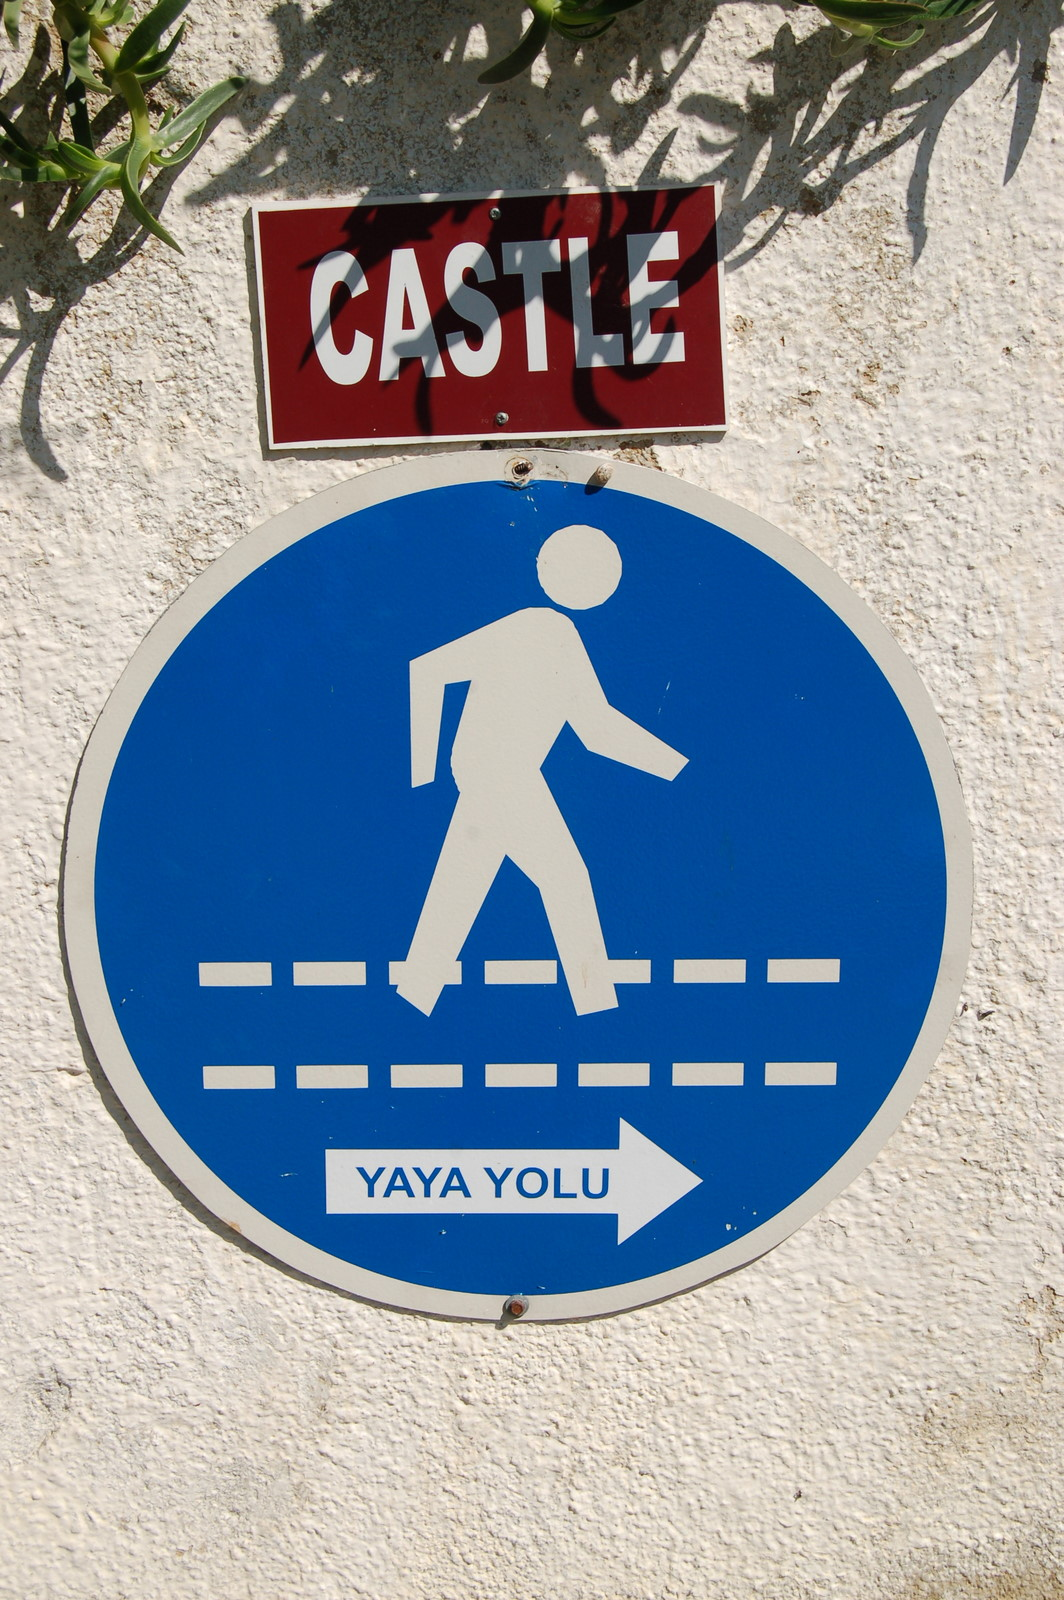 To the castle!